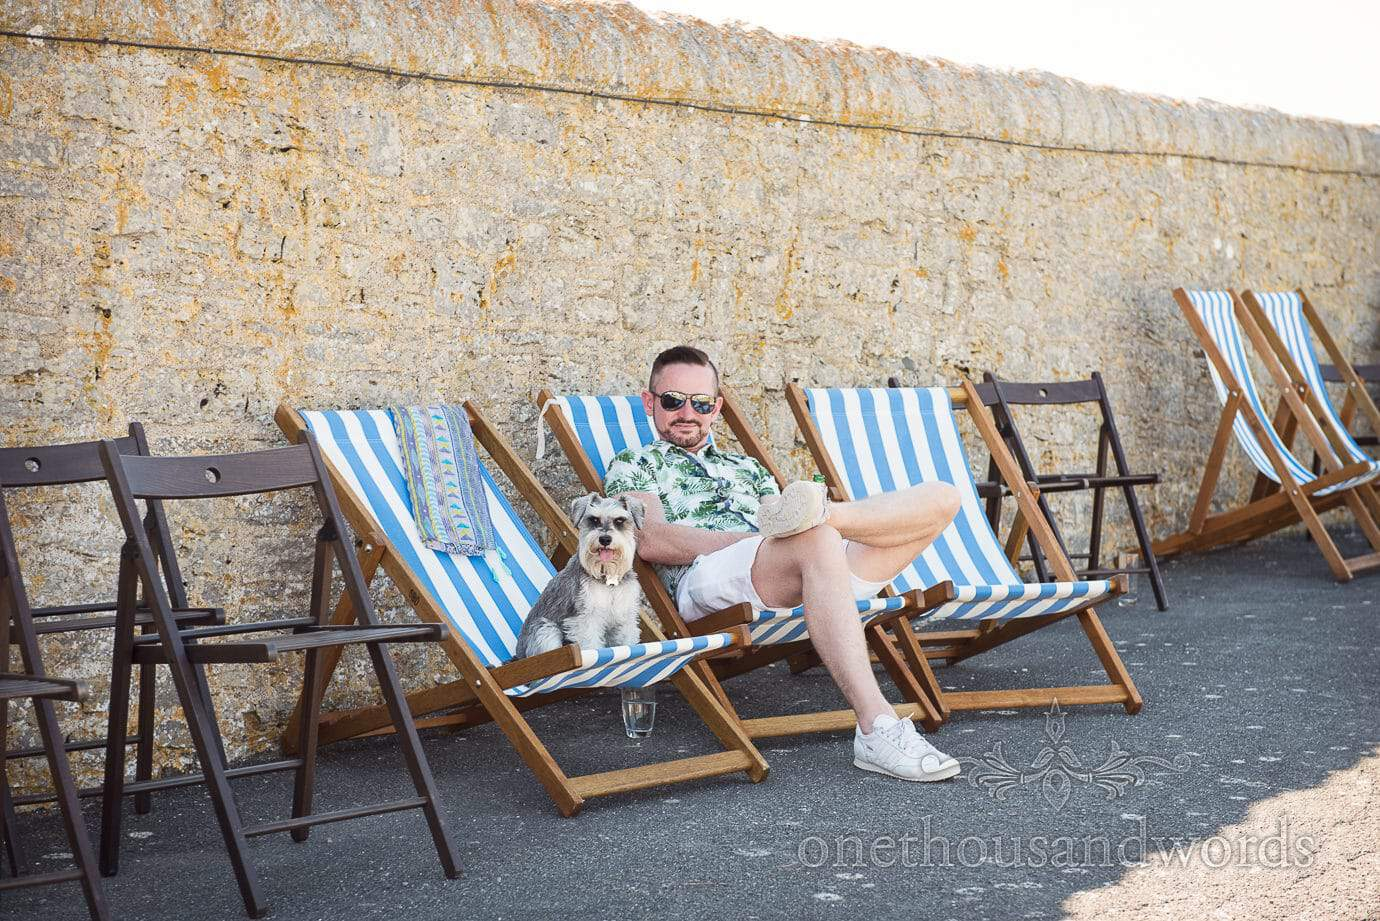 Wedding guest with small dog in striped deck chairs at post wedding party